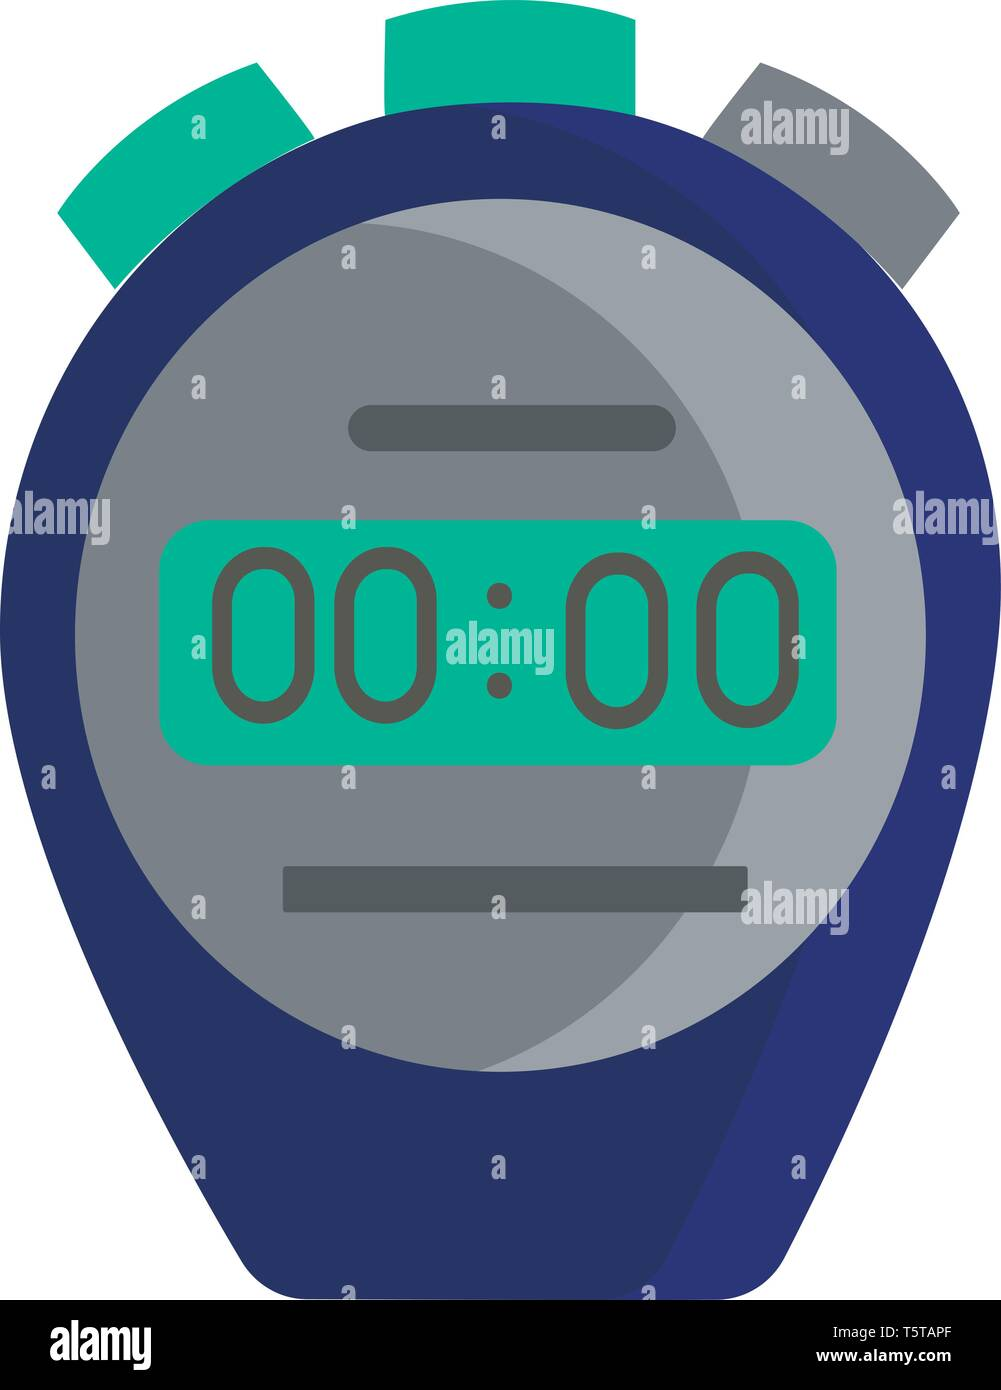 Clipart of a blue-colored stopwatch with green and grey